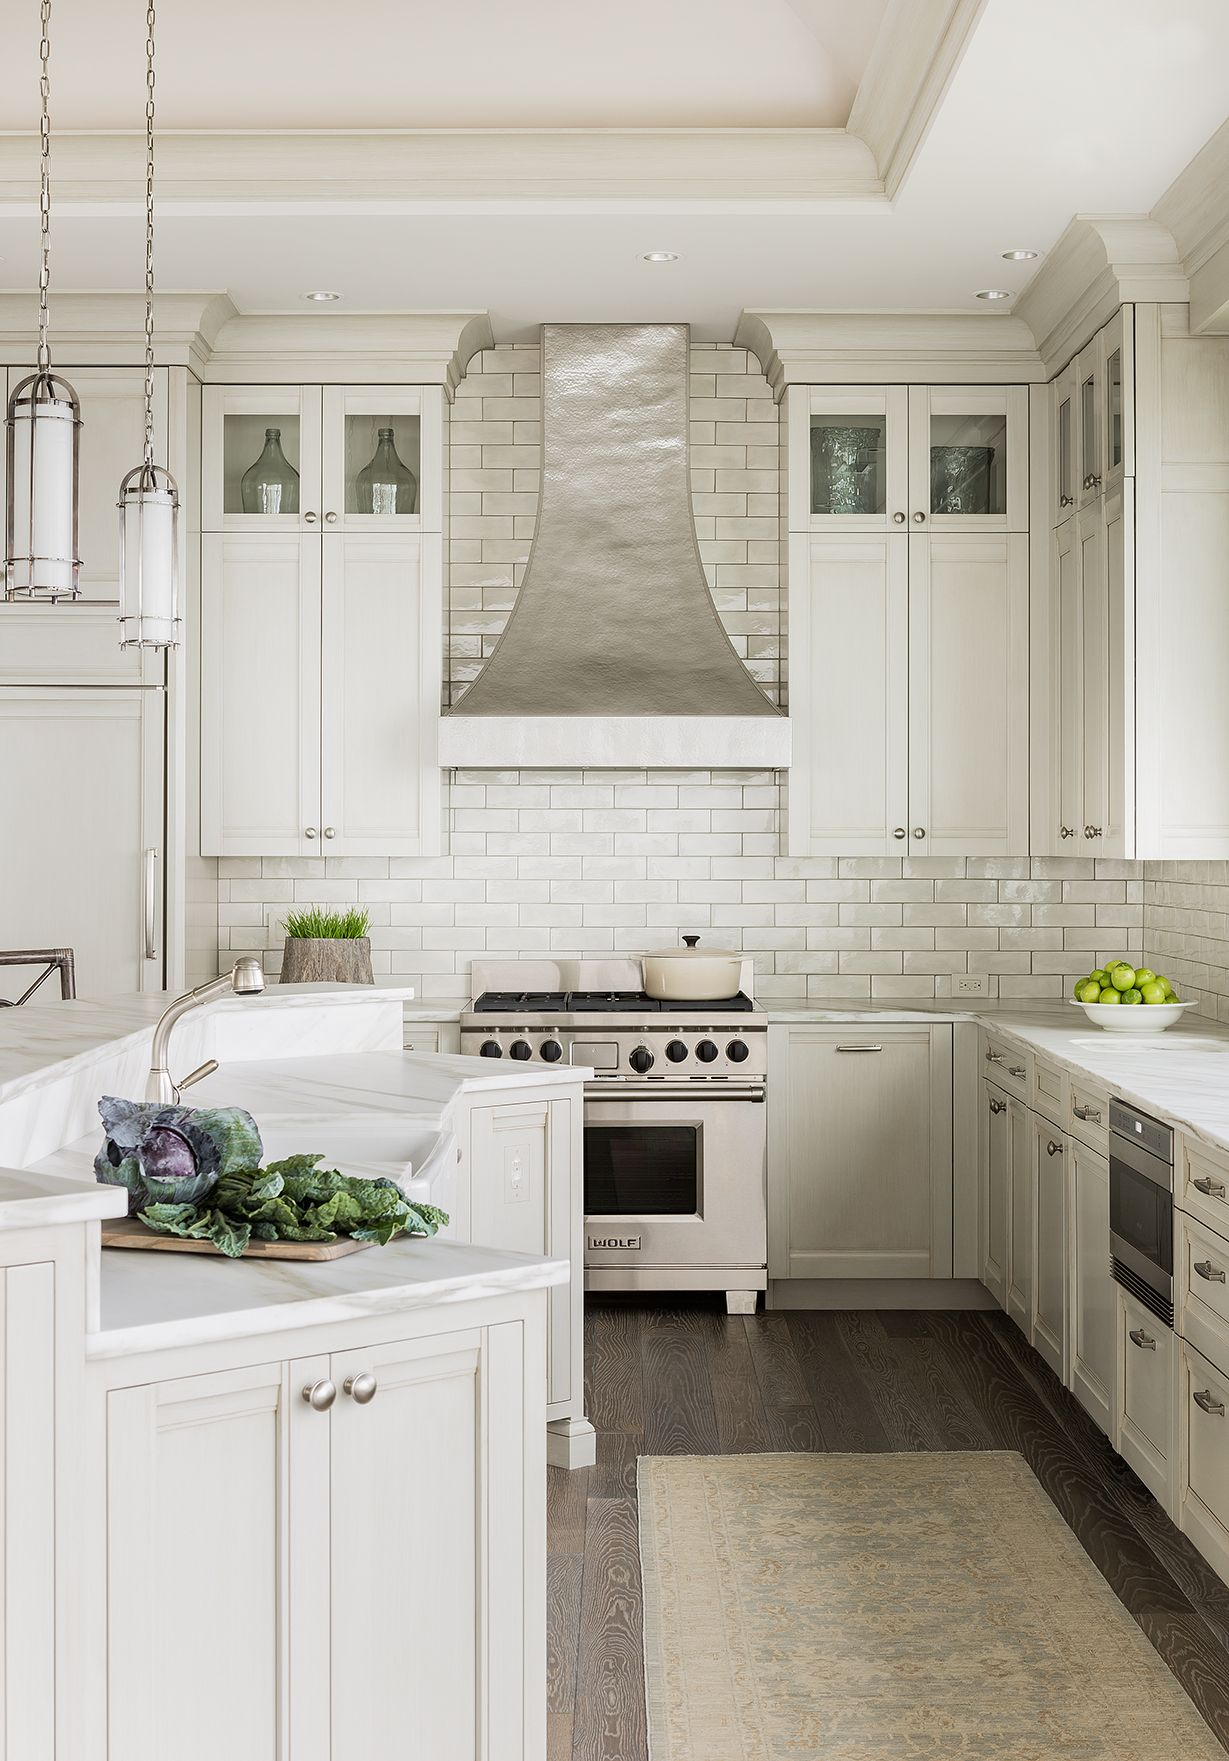 Crazy Gorgeous Kitchen Grey Stained Oak Flooring Shiny Uneven